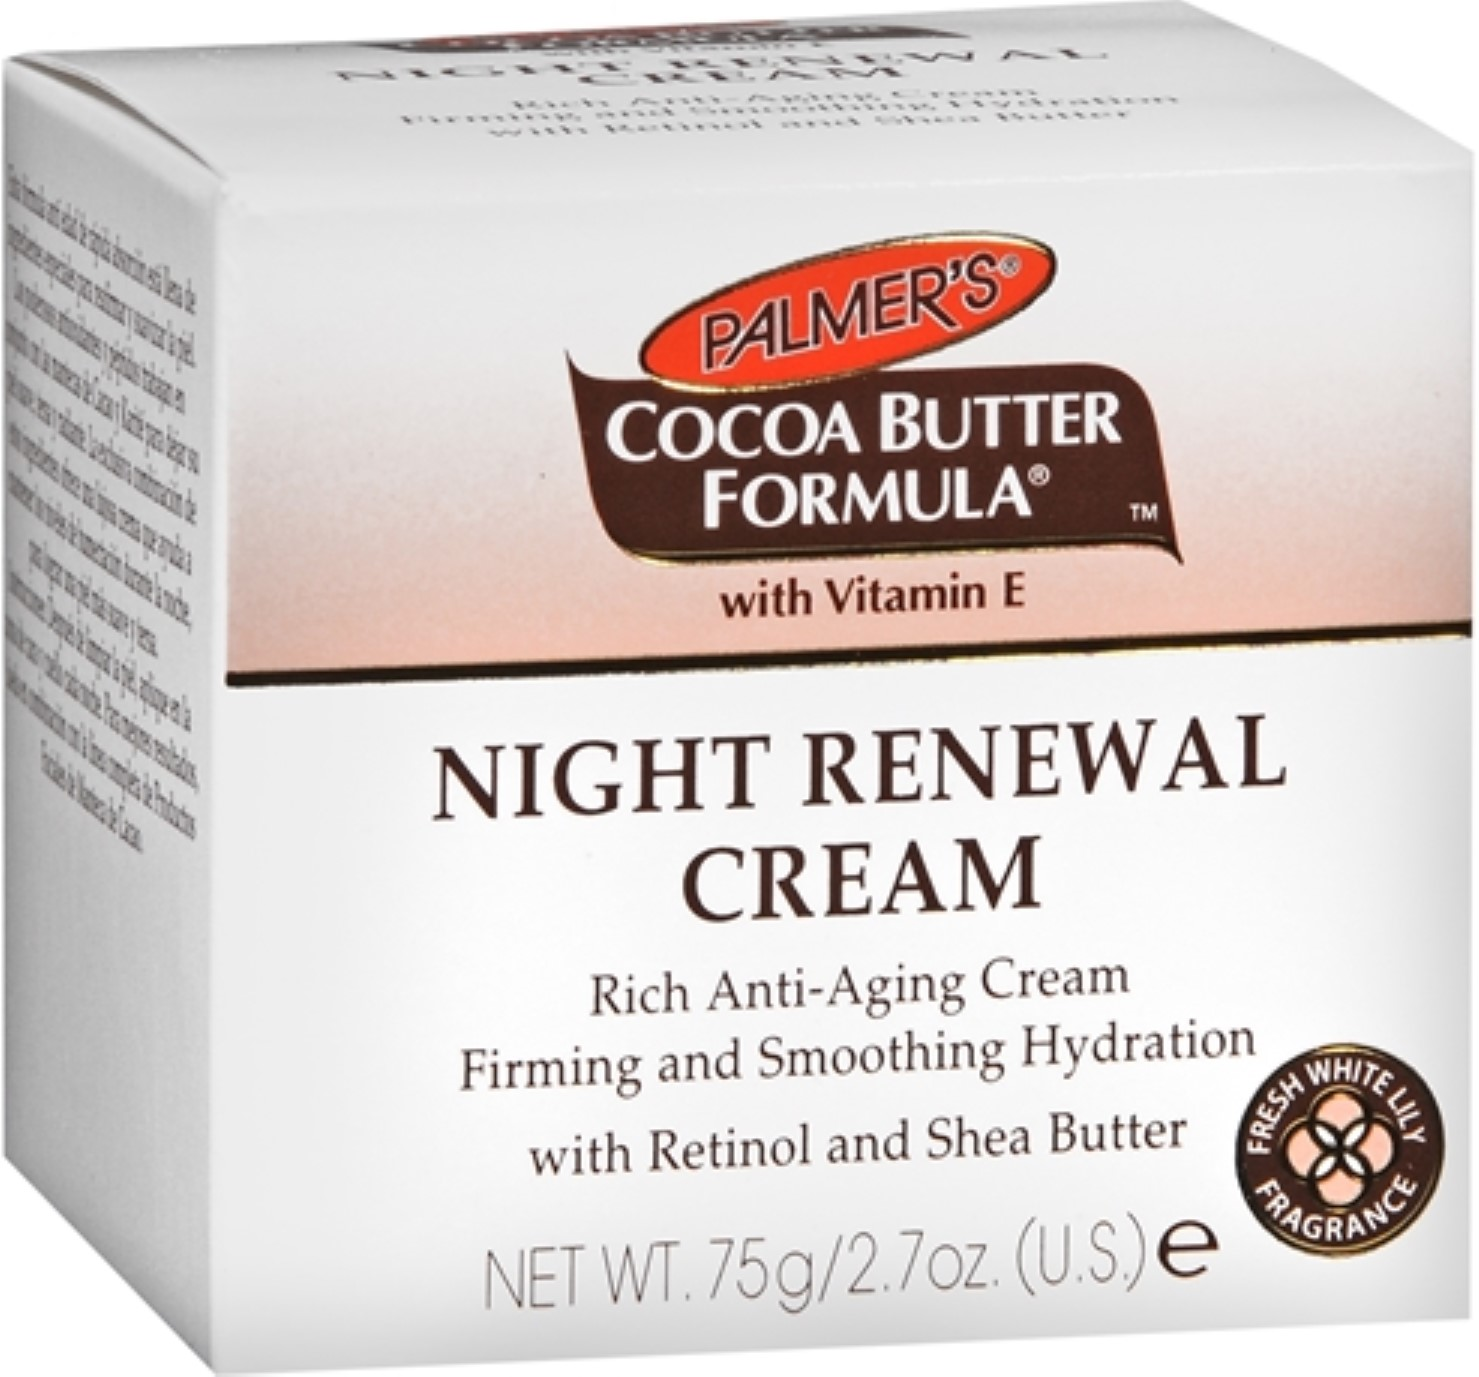 Palmer's Cocoa Butter Formula Fresh White Lily Night Renewal Cream, 2.7 oz